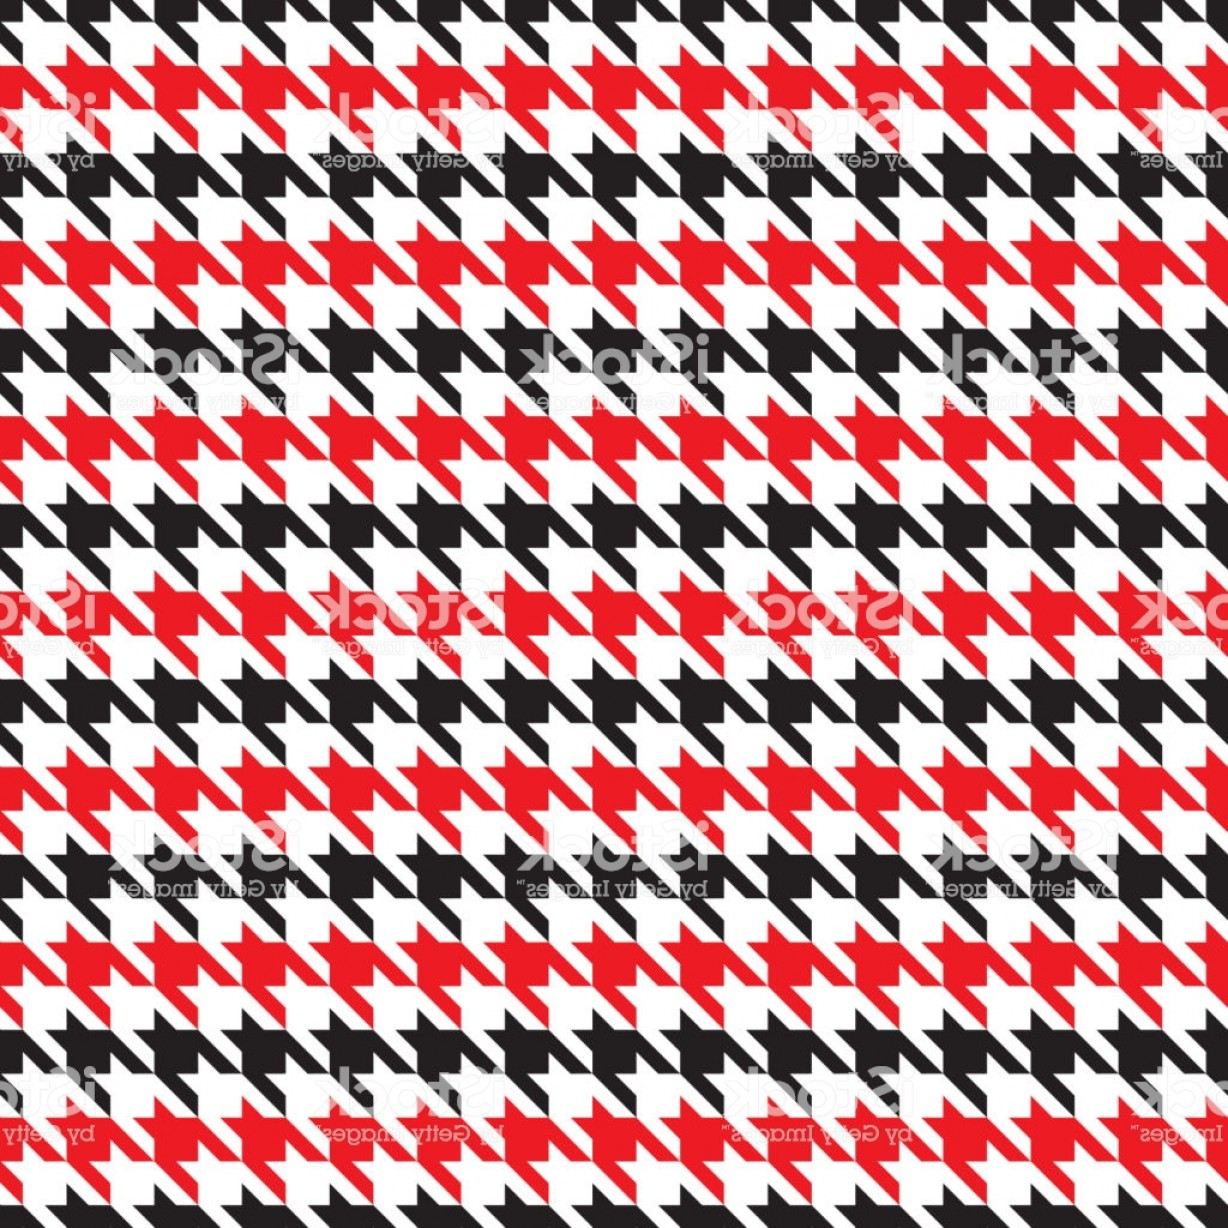 Pink And Black Houndstooth Vector: Seamless Red And Black Houndstooth Pattern Vector Image Gm